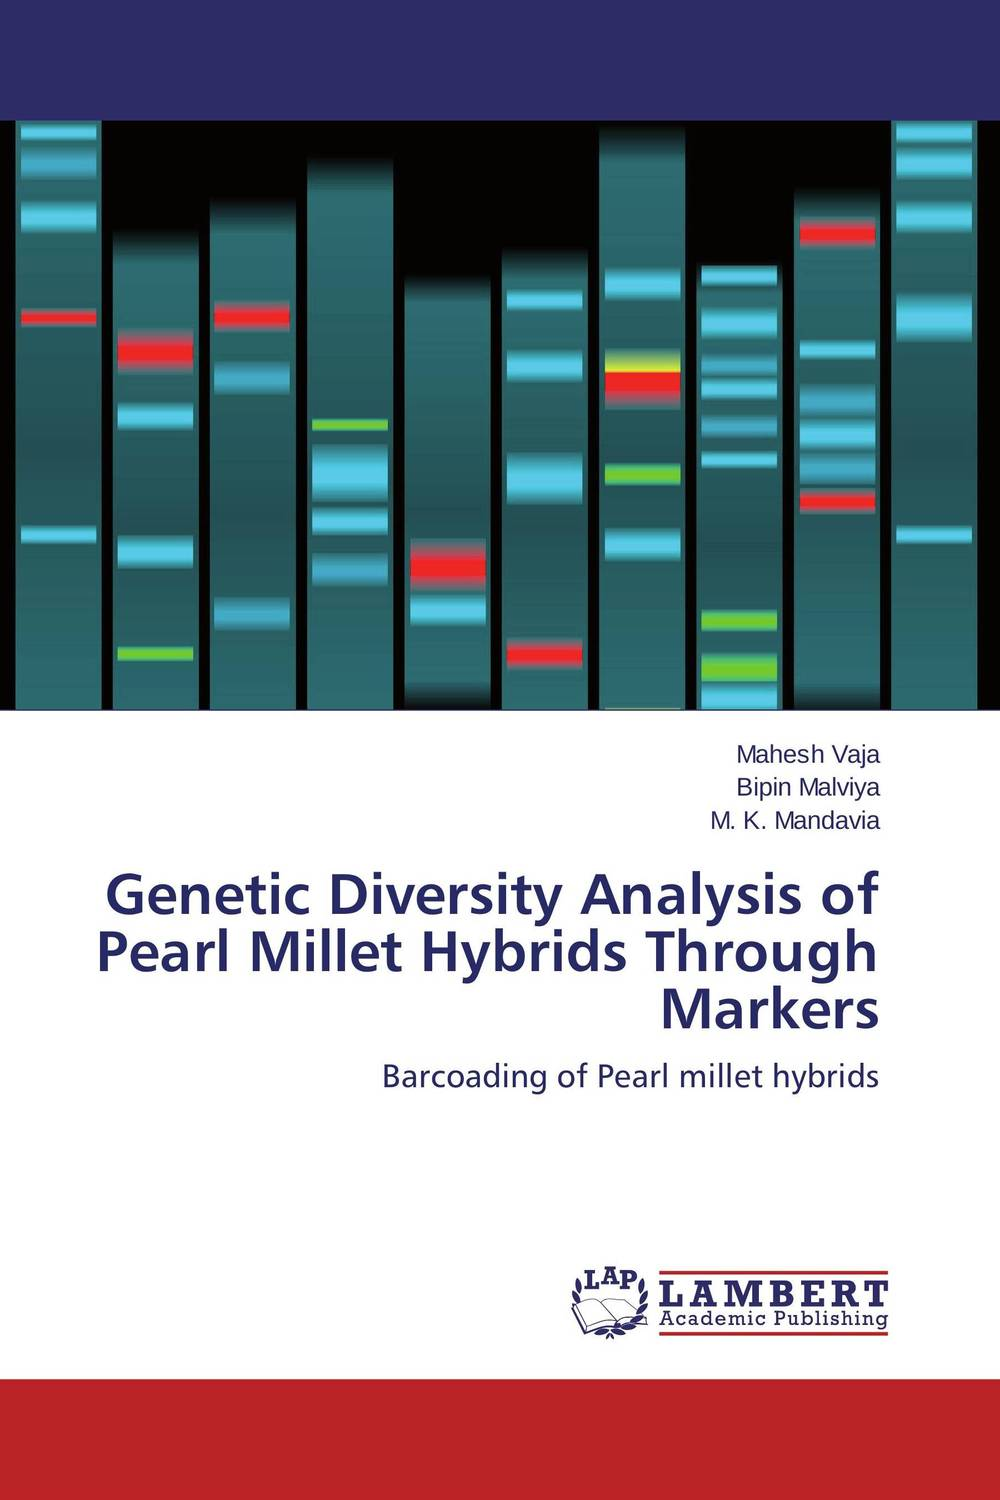 Genetic Diversity Analysis of Pearl Millet Hybrids Through Markers  anshita purohit pradeep verma and naimesh patel analysis of genetic diversity of castor cultivars using rapd